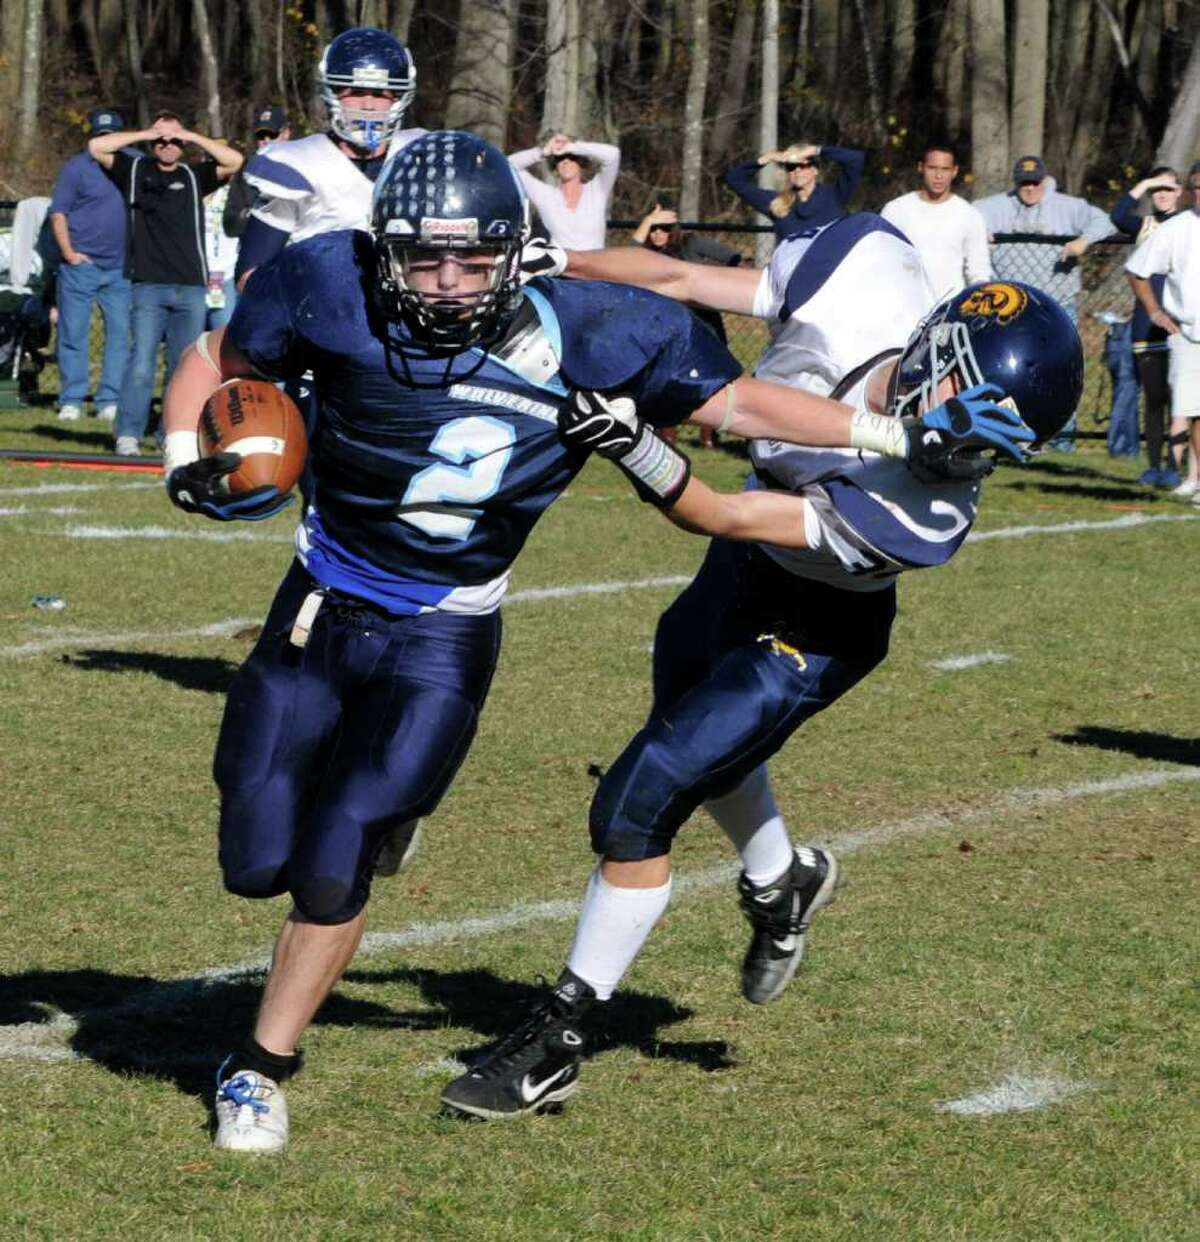 Oxford's #2 Nick Donofrio attempts to break Weston's #34 JD Simmons tackle during a game at Oxford High School on Sat. Nov. 13, 2010.